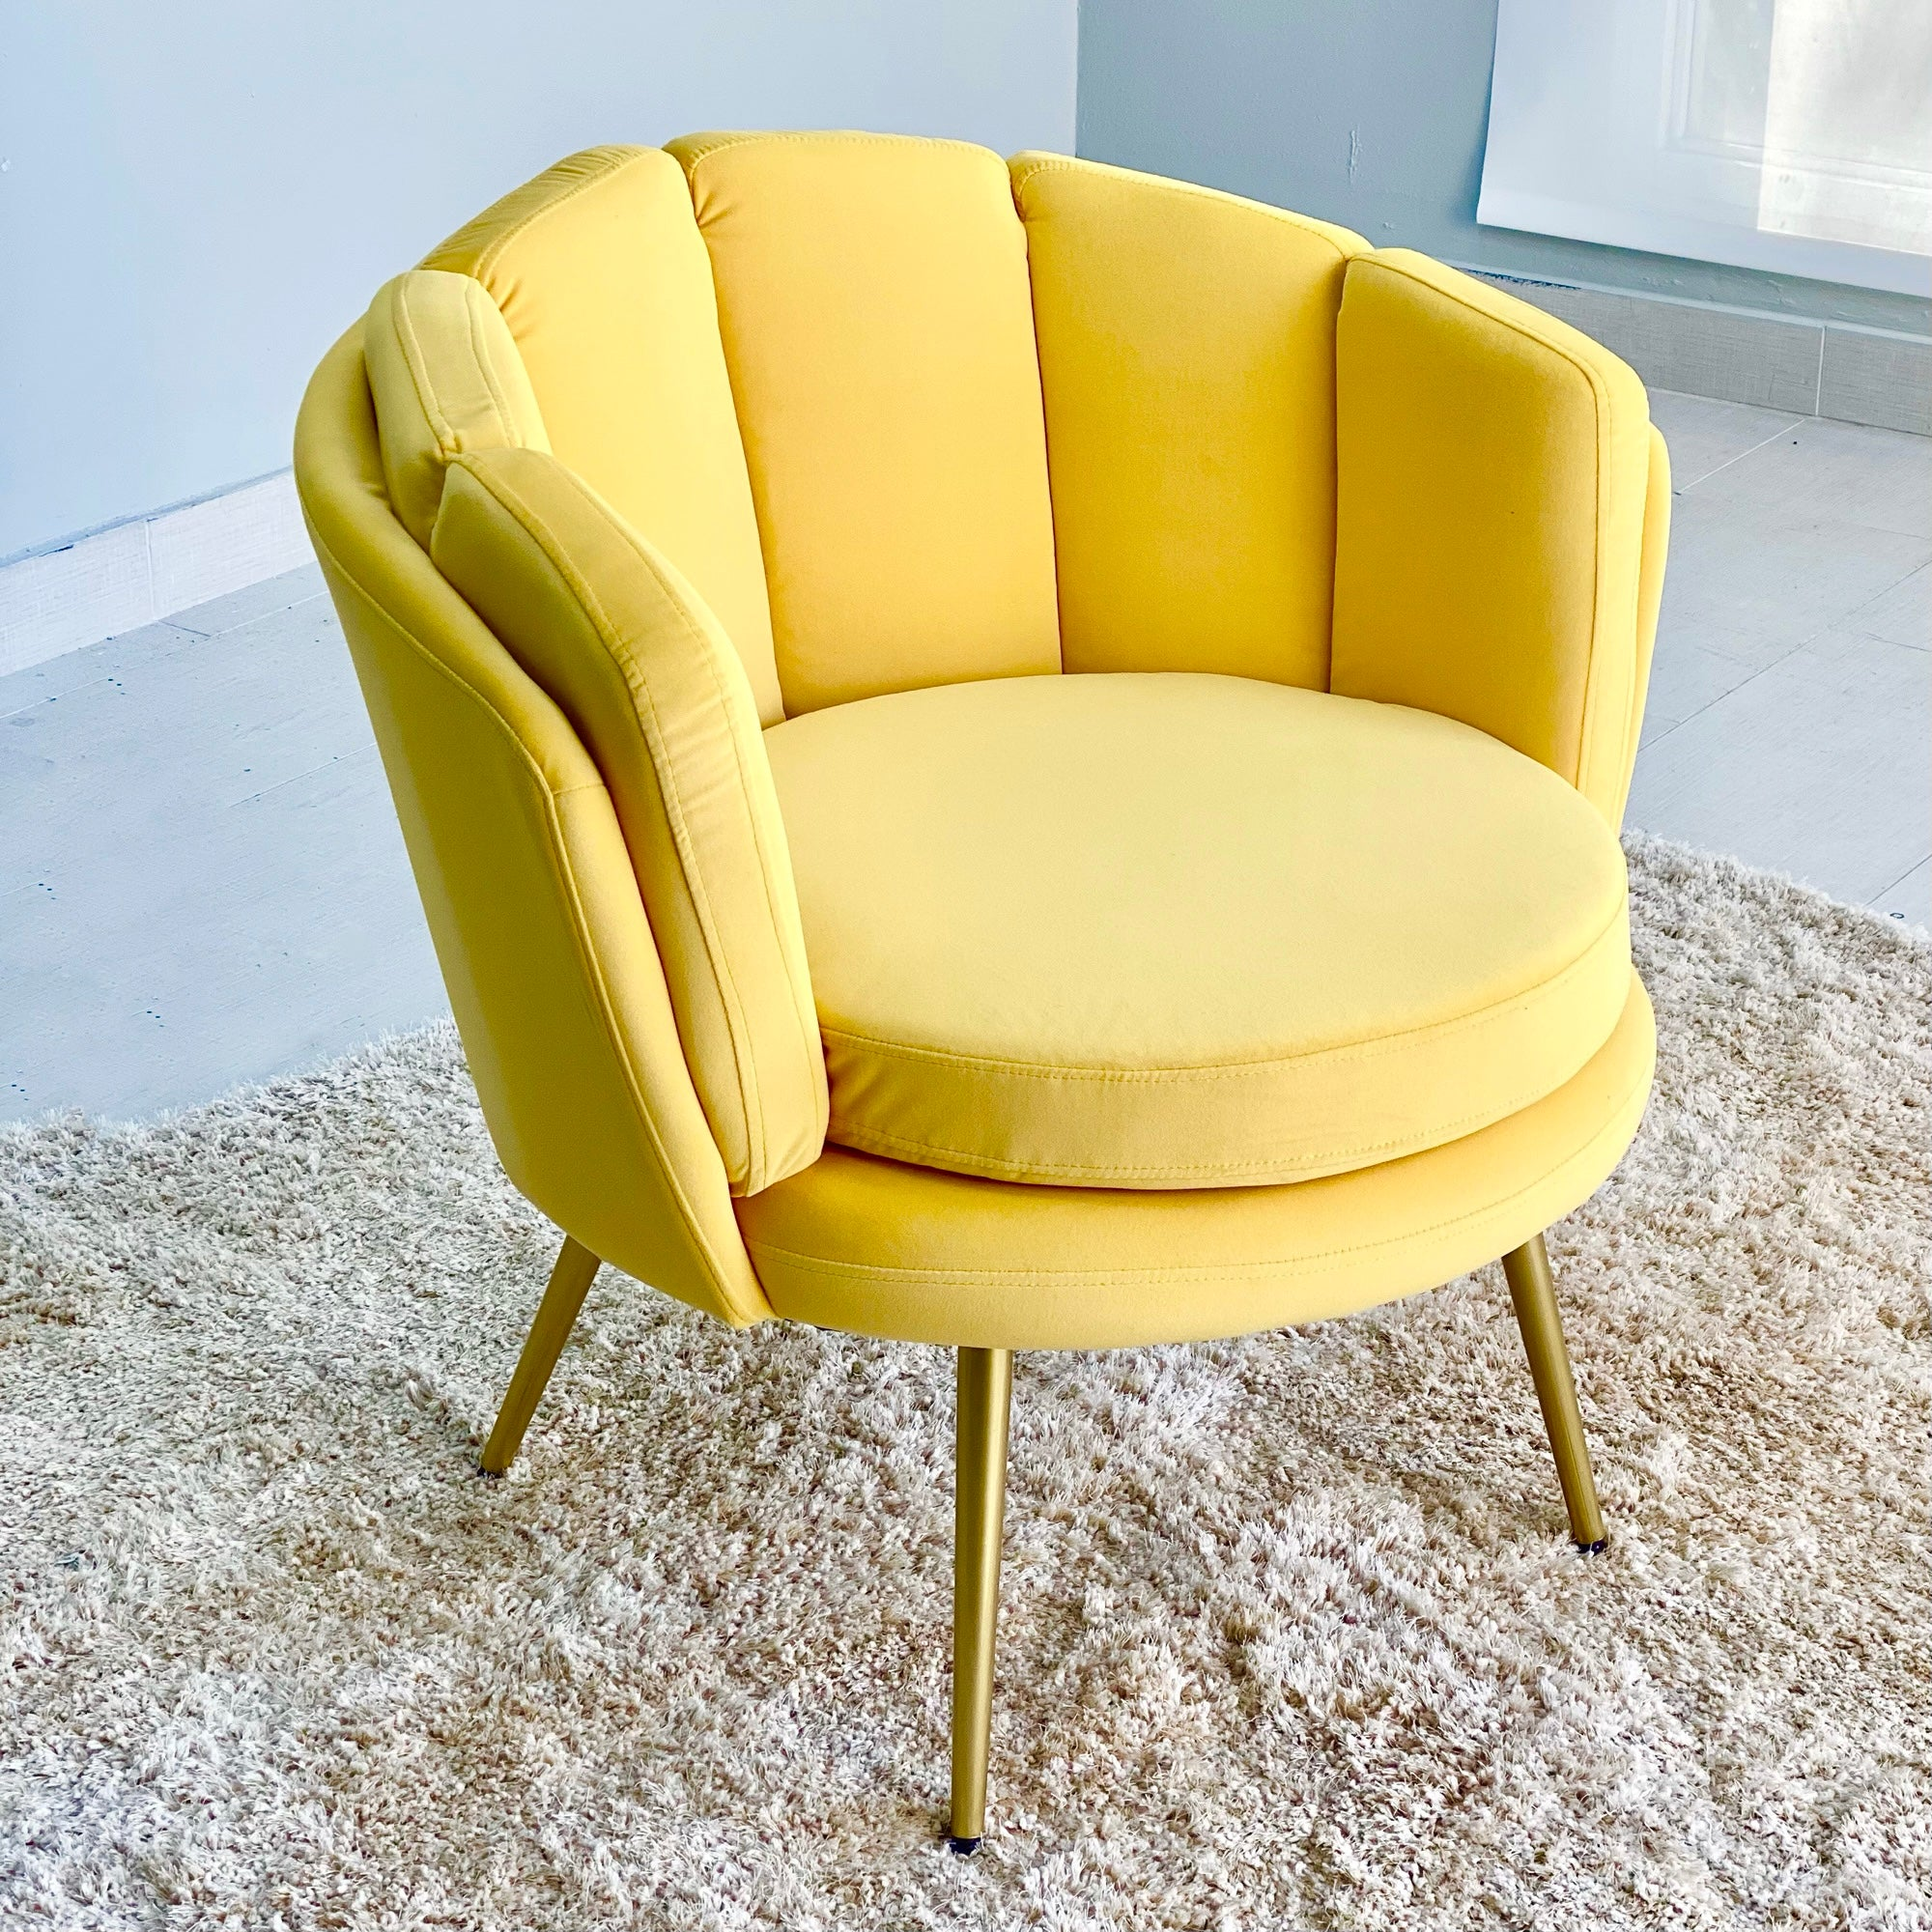 Illuminating Velvet Yellow Shell Shaped Chair